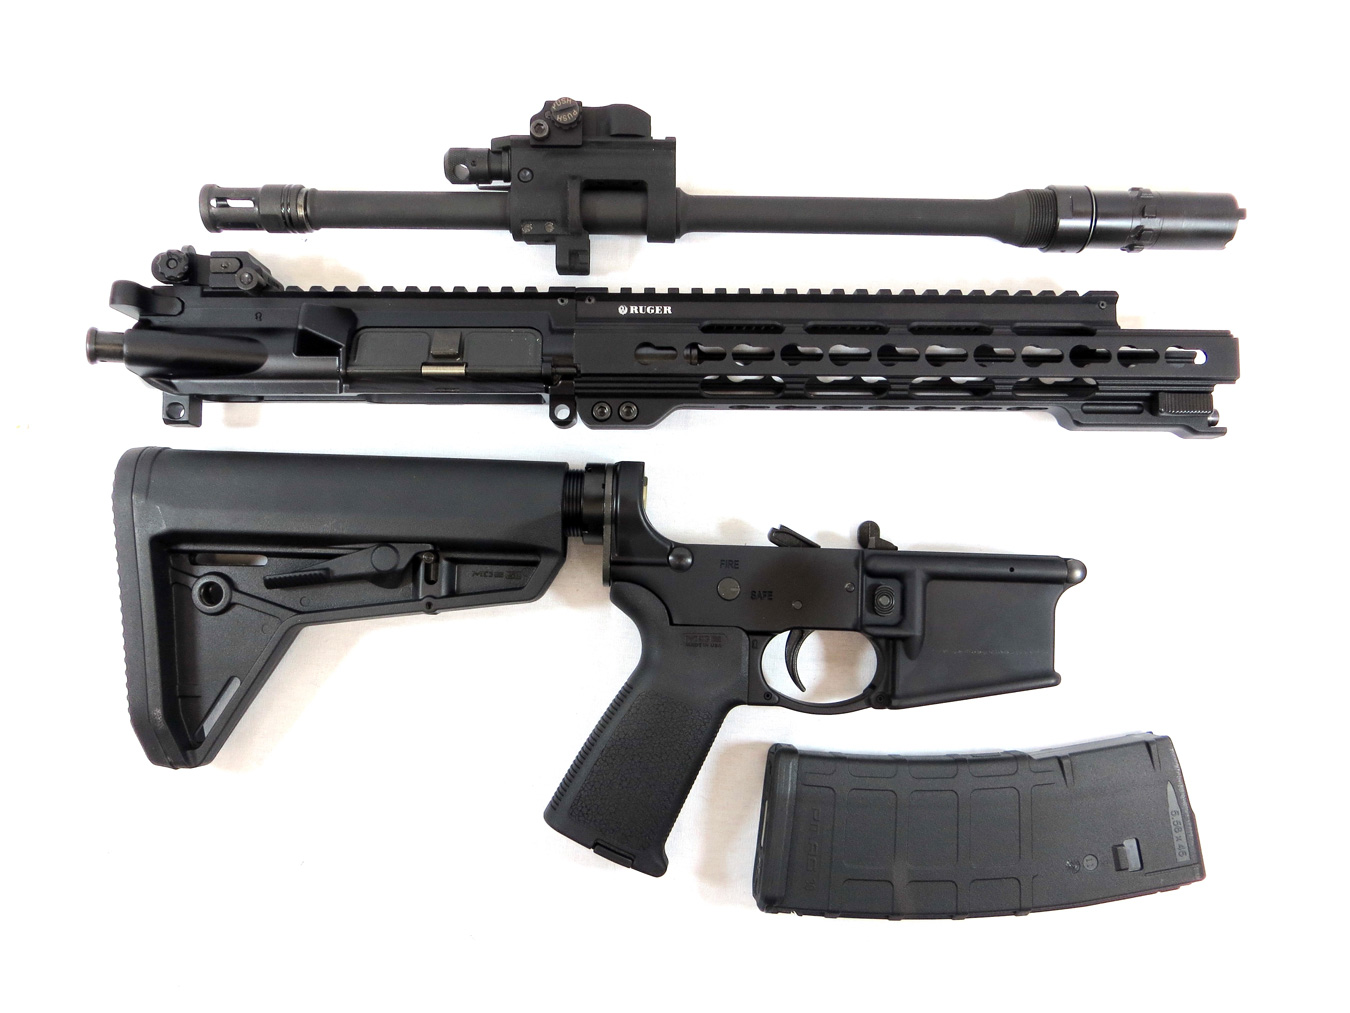 Disassembled Ruger takedown AR-15